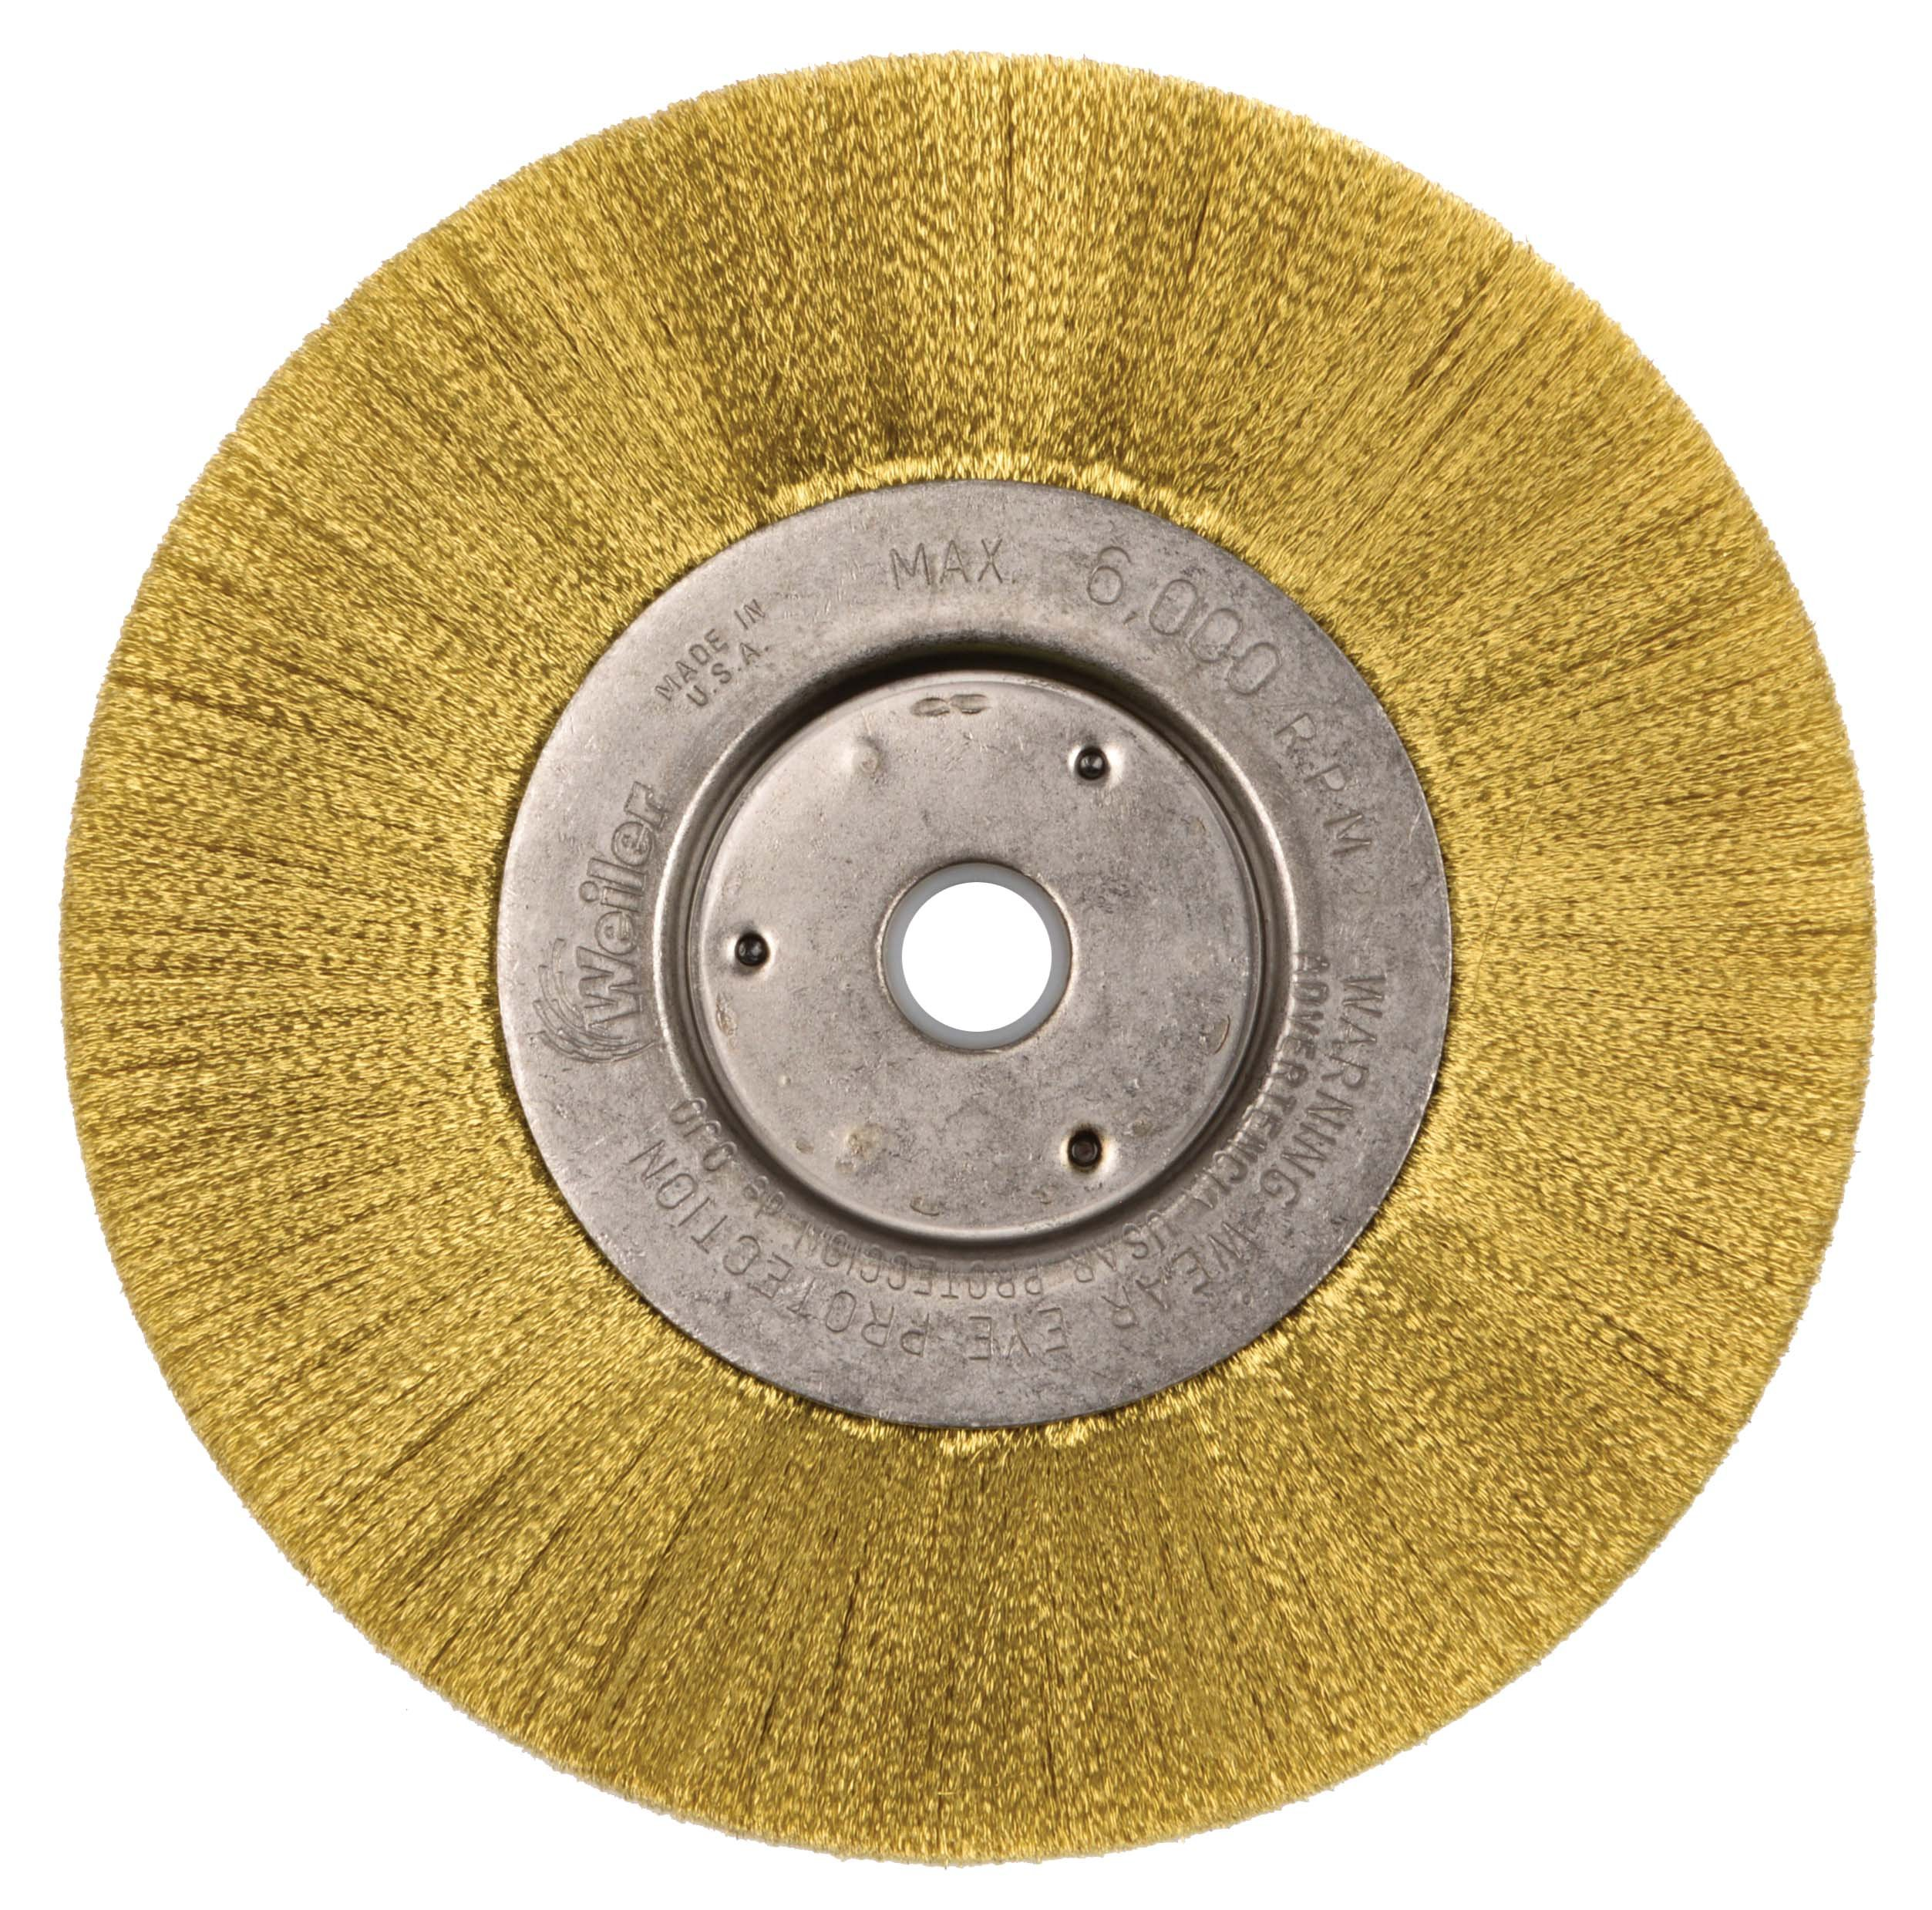 Weiler 1415 Narrow Face Crimped Wire Wheel, 6'', 0.05'' Brass Fill, 5/8''-1/2'' Arbor Hole (Pack of 2)